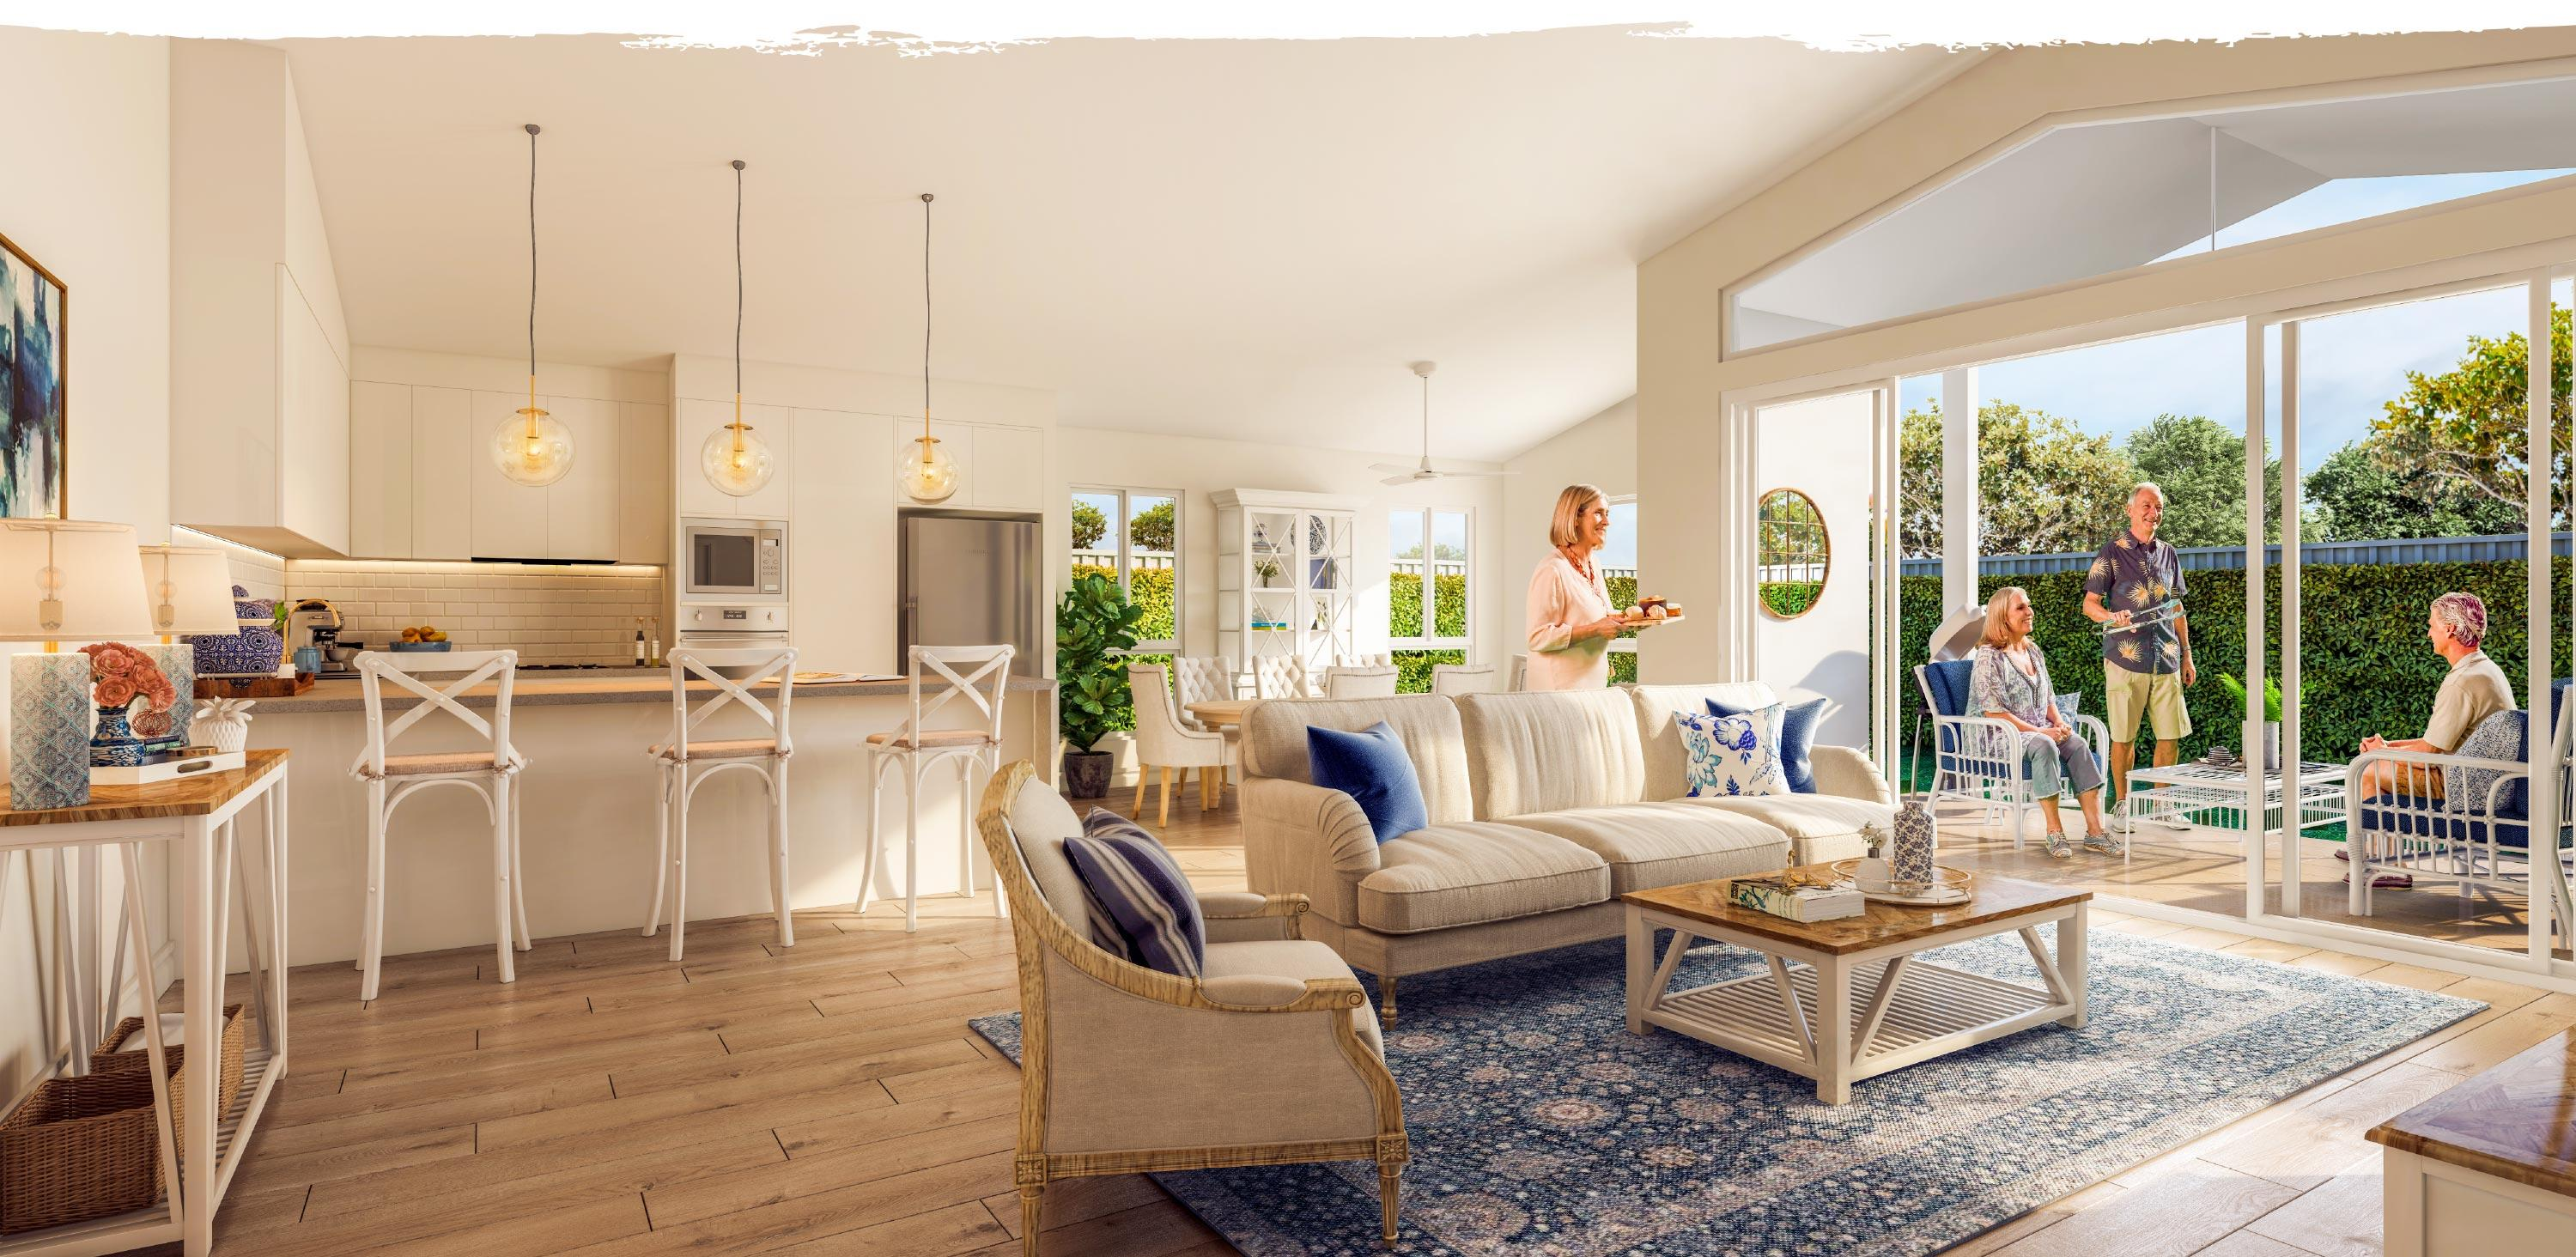 Plantations residents entertaining friends in their new hampton style home